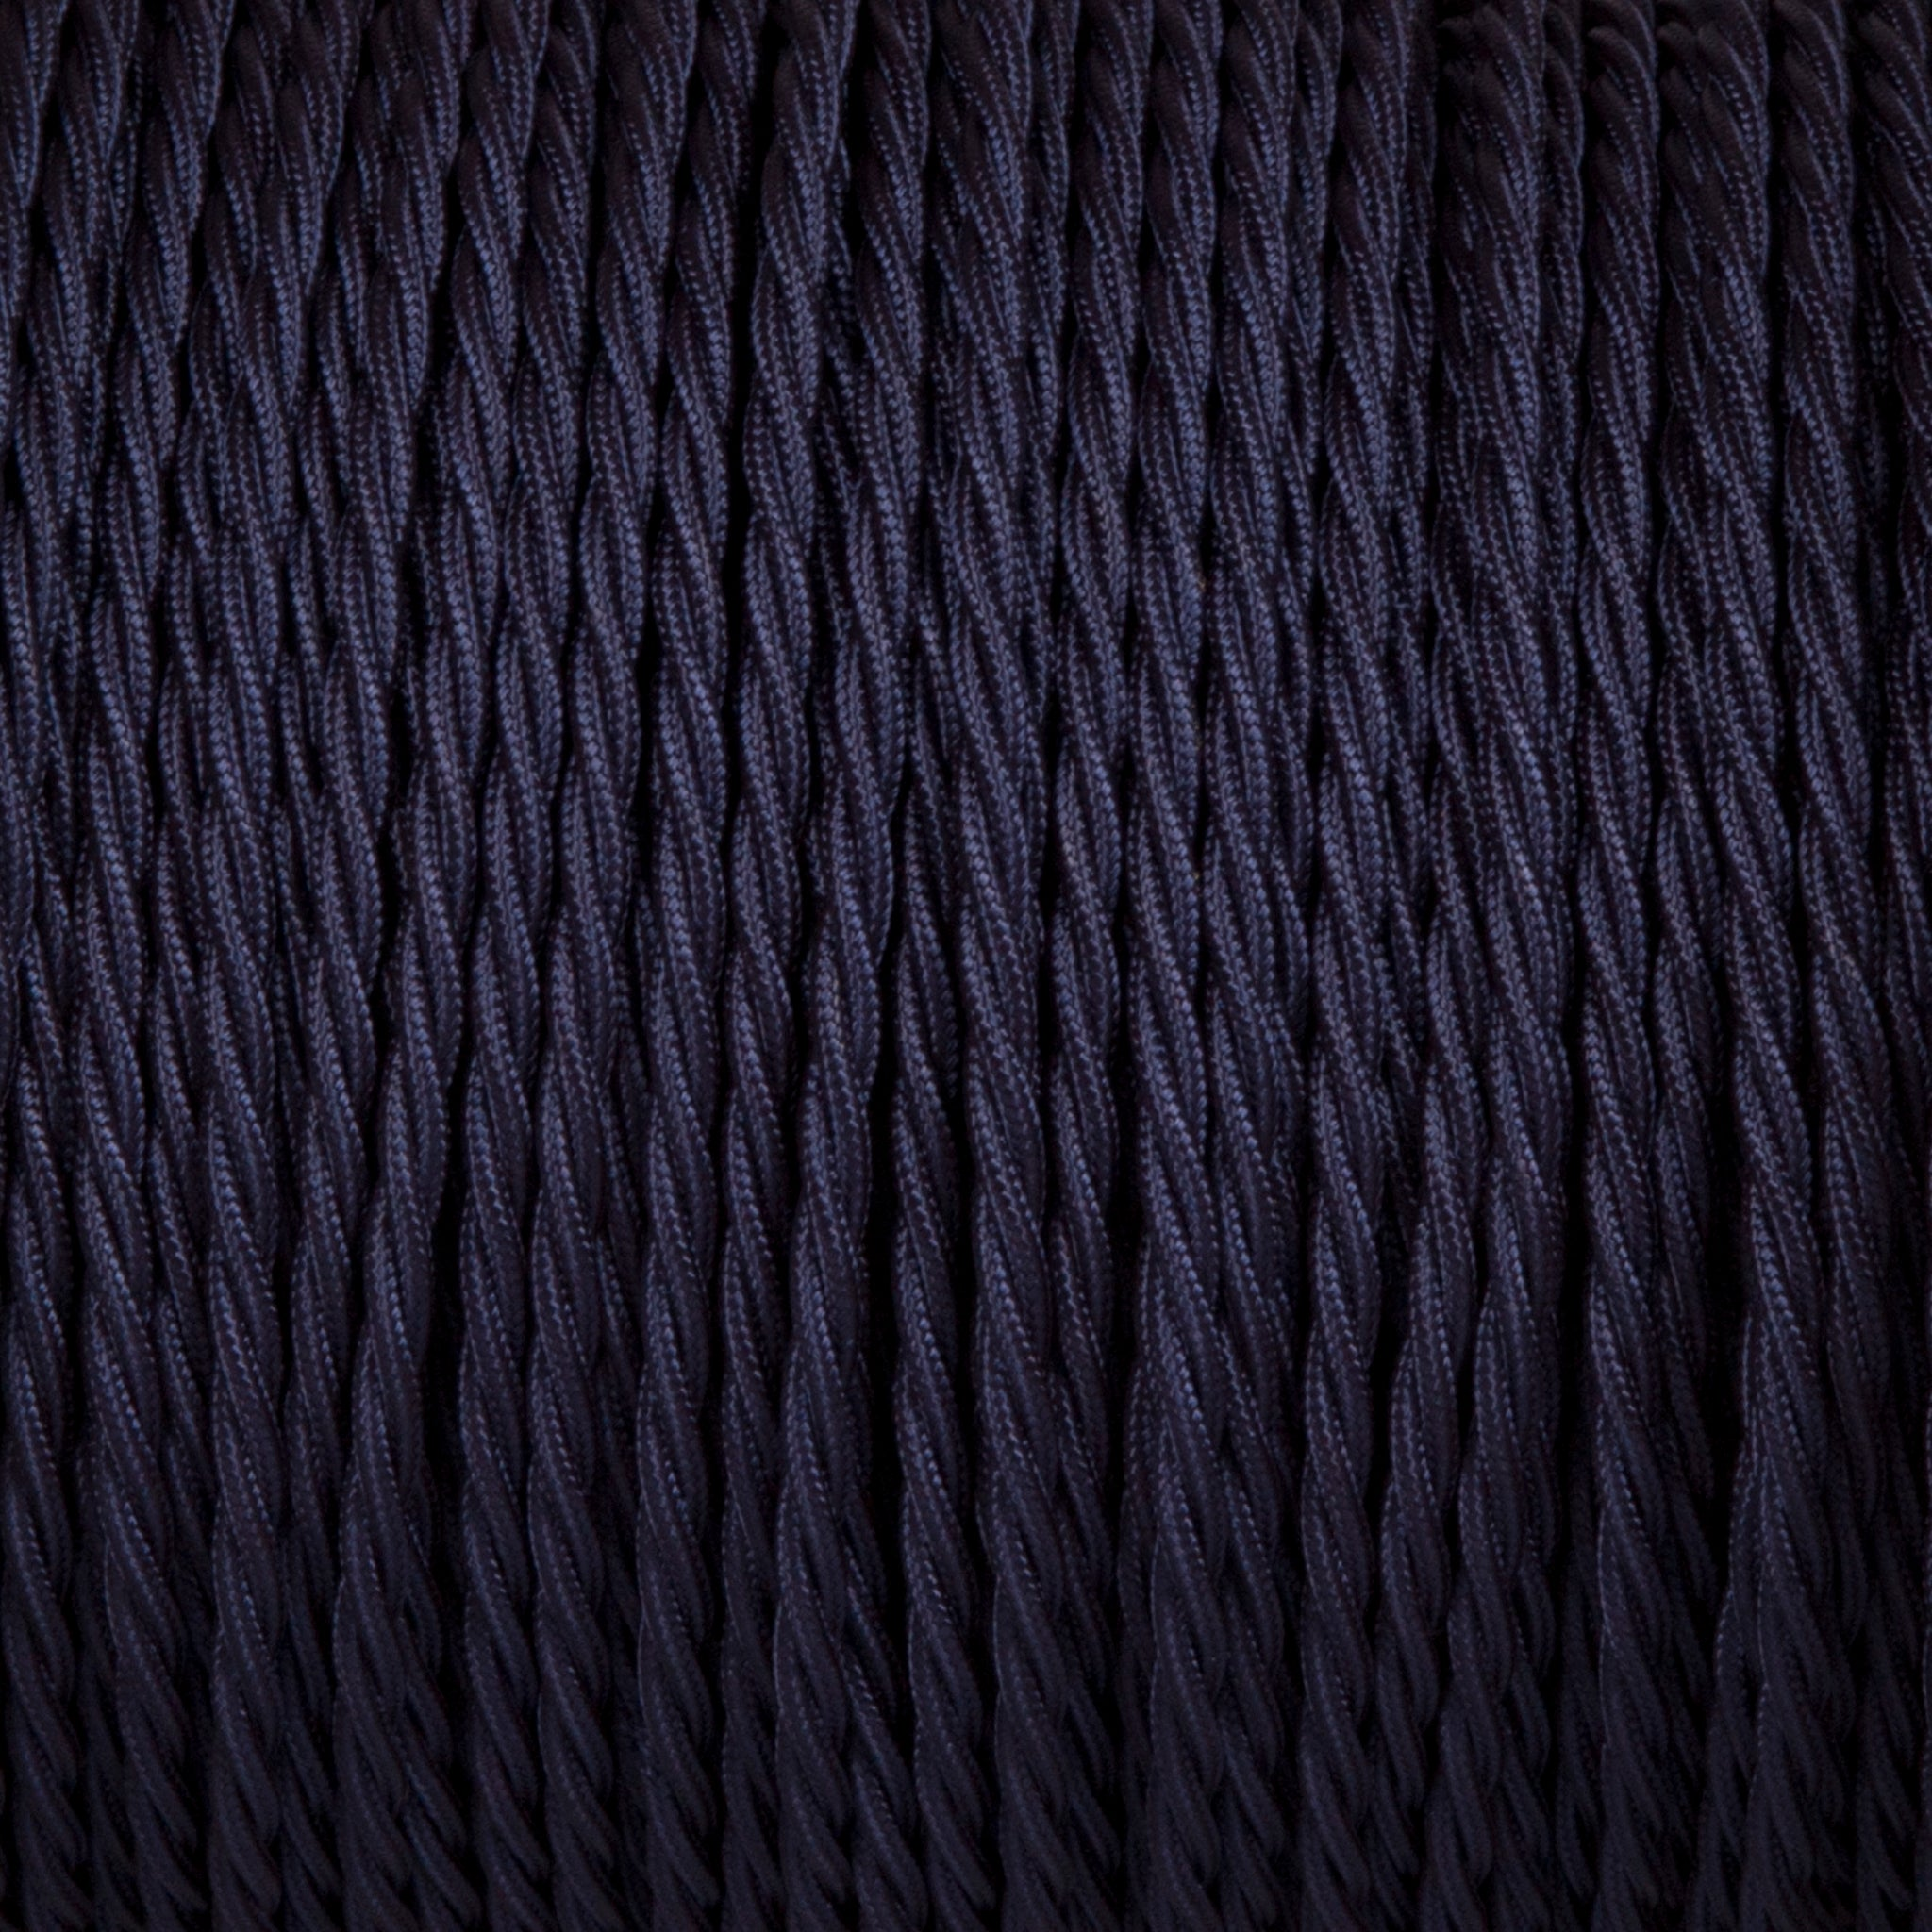 Twisted lighting cable - Navy blue braided fabric